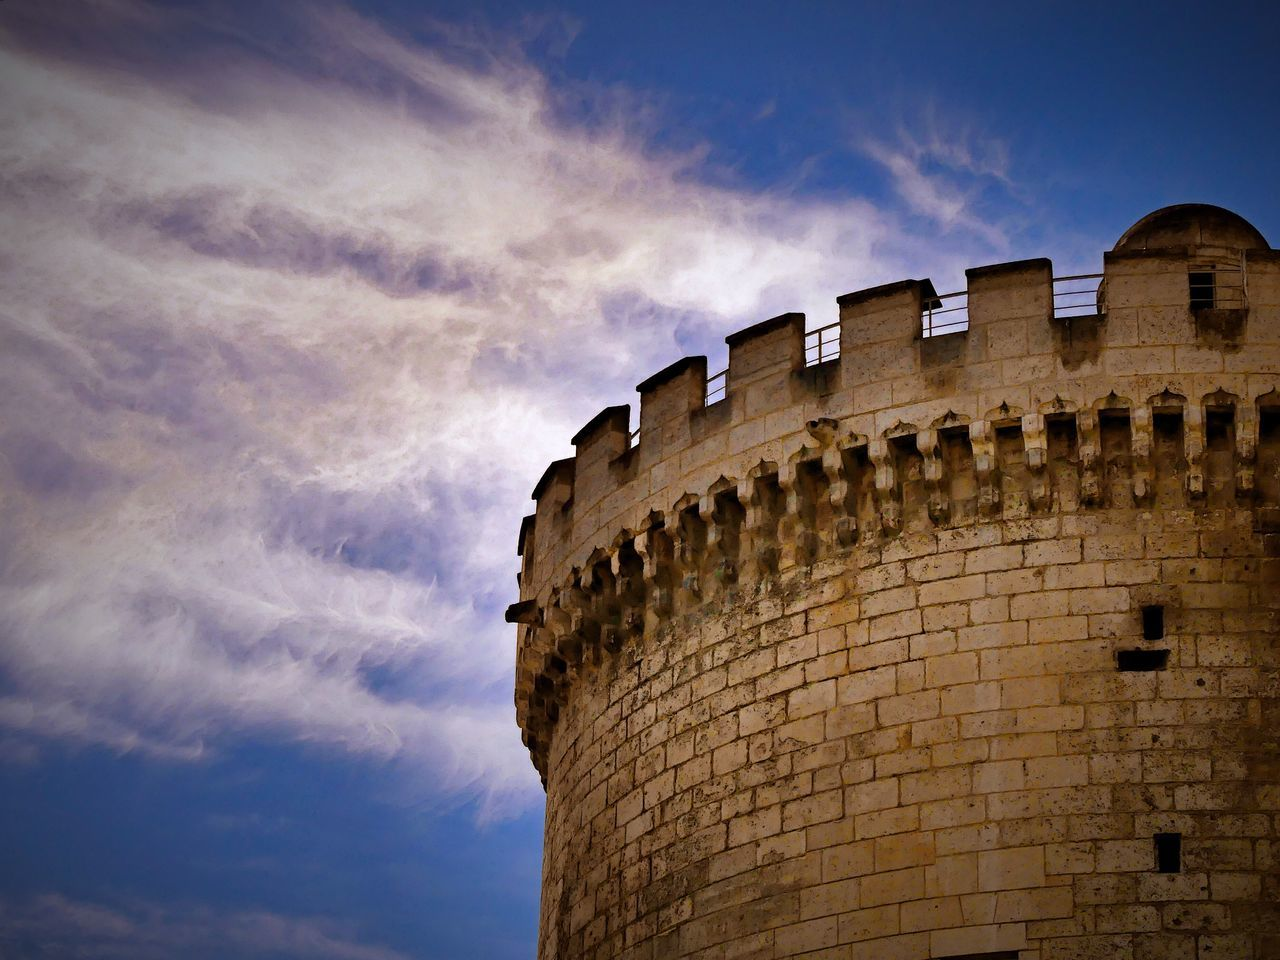 architecture, built structure, low angle view, cloud - sky, sky, history, building exterior, no people, ancient, outdoors, day